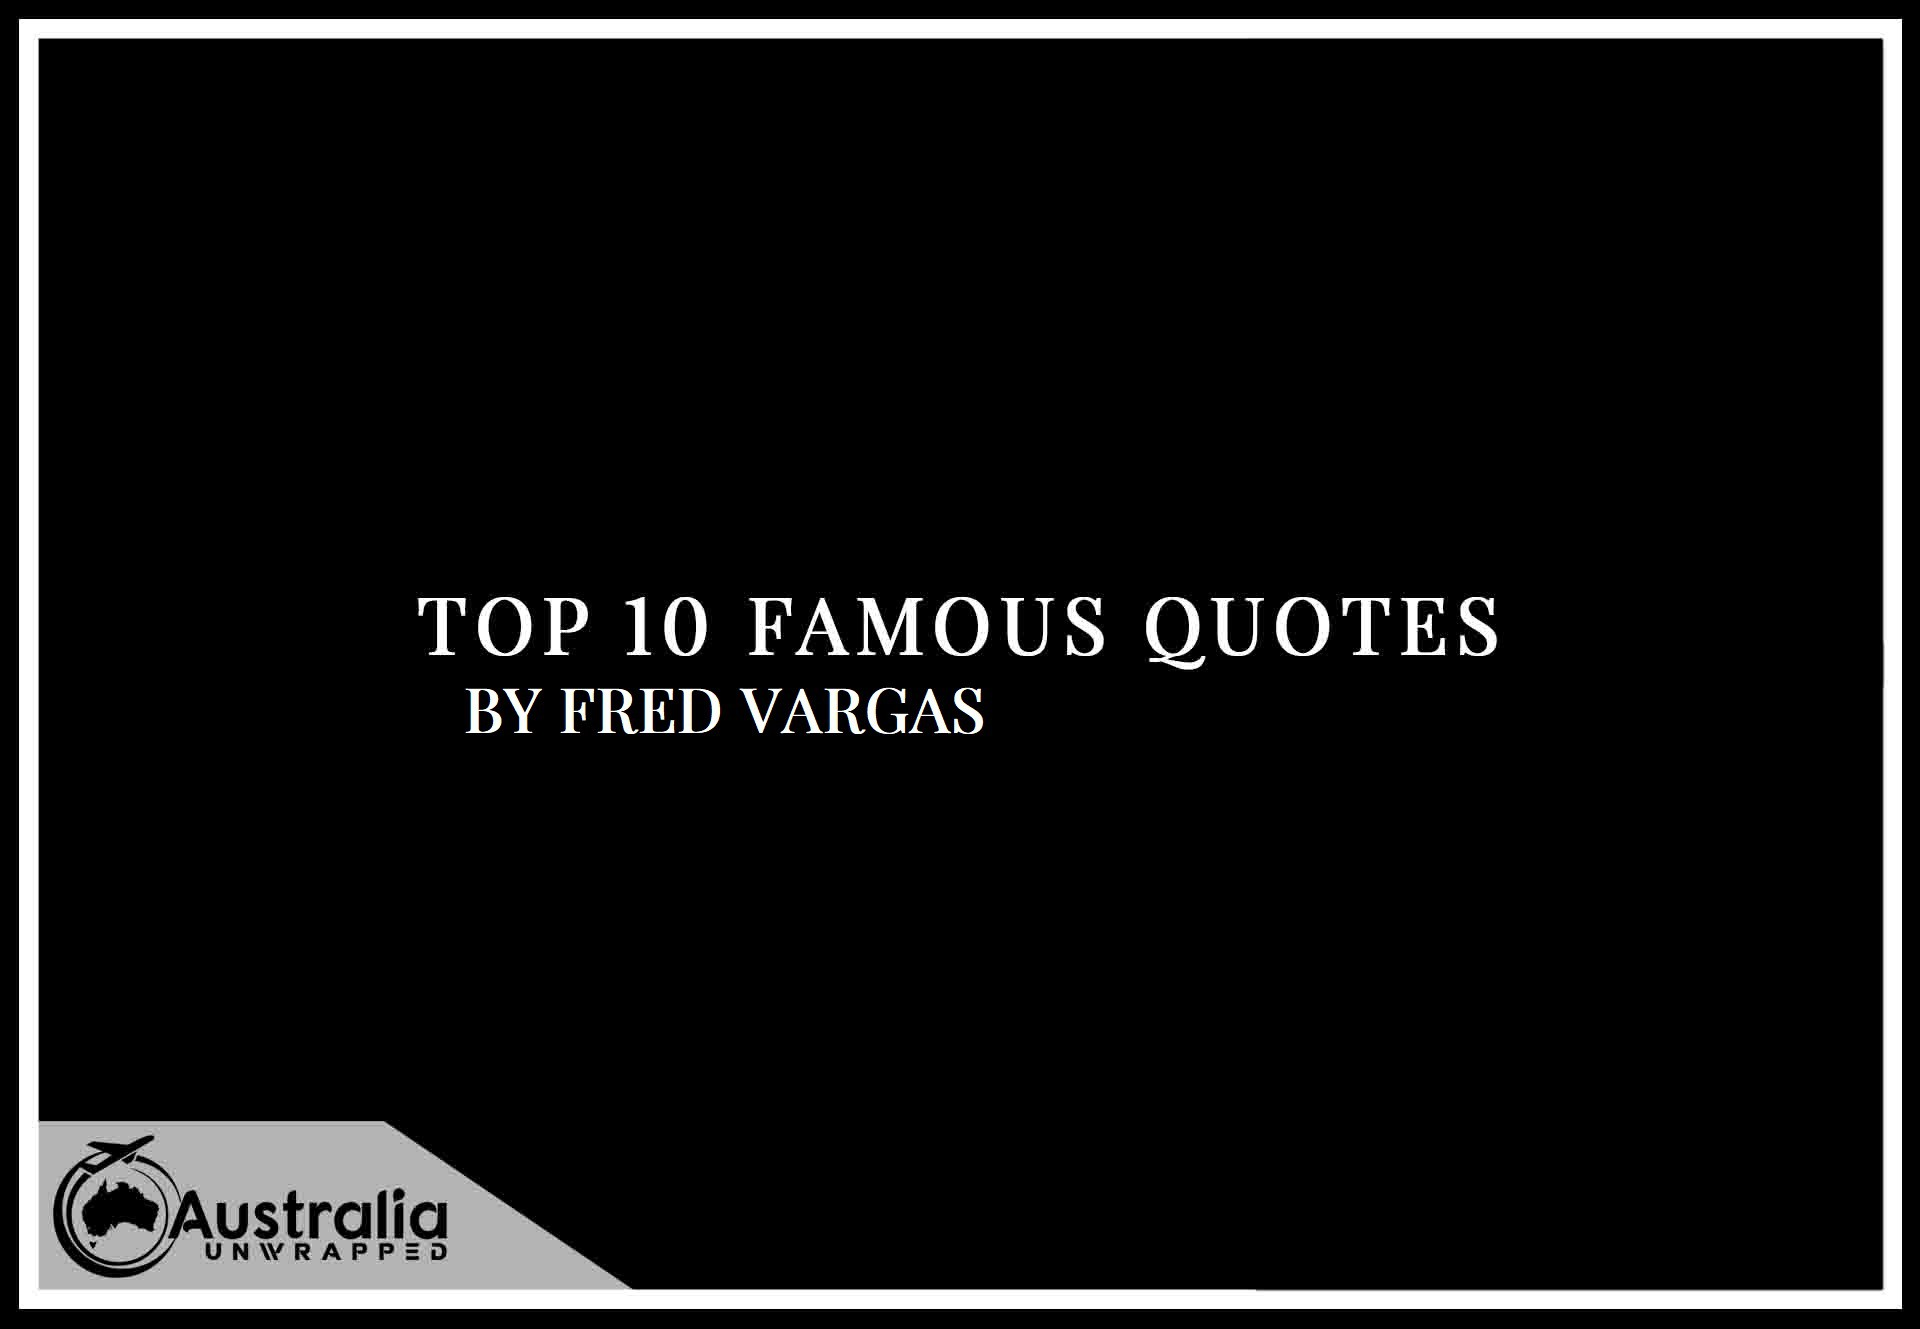 Top 10 Famous Quotes by Author Fred Vargas